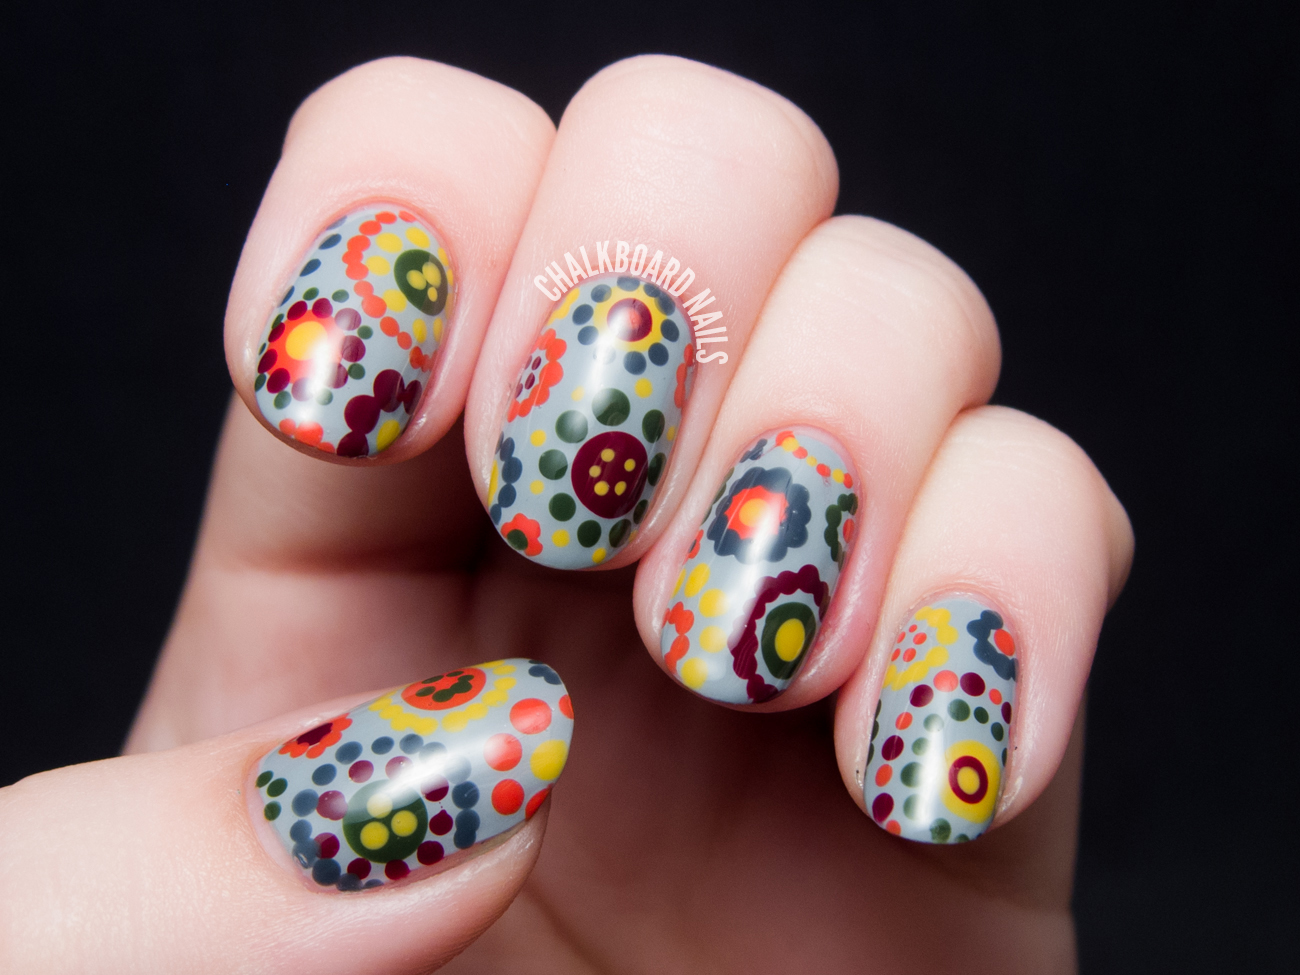 70's dotted floral nail art by @chalkboardnails